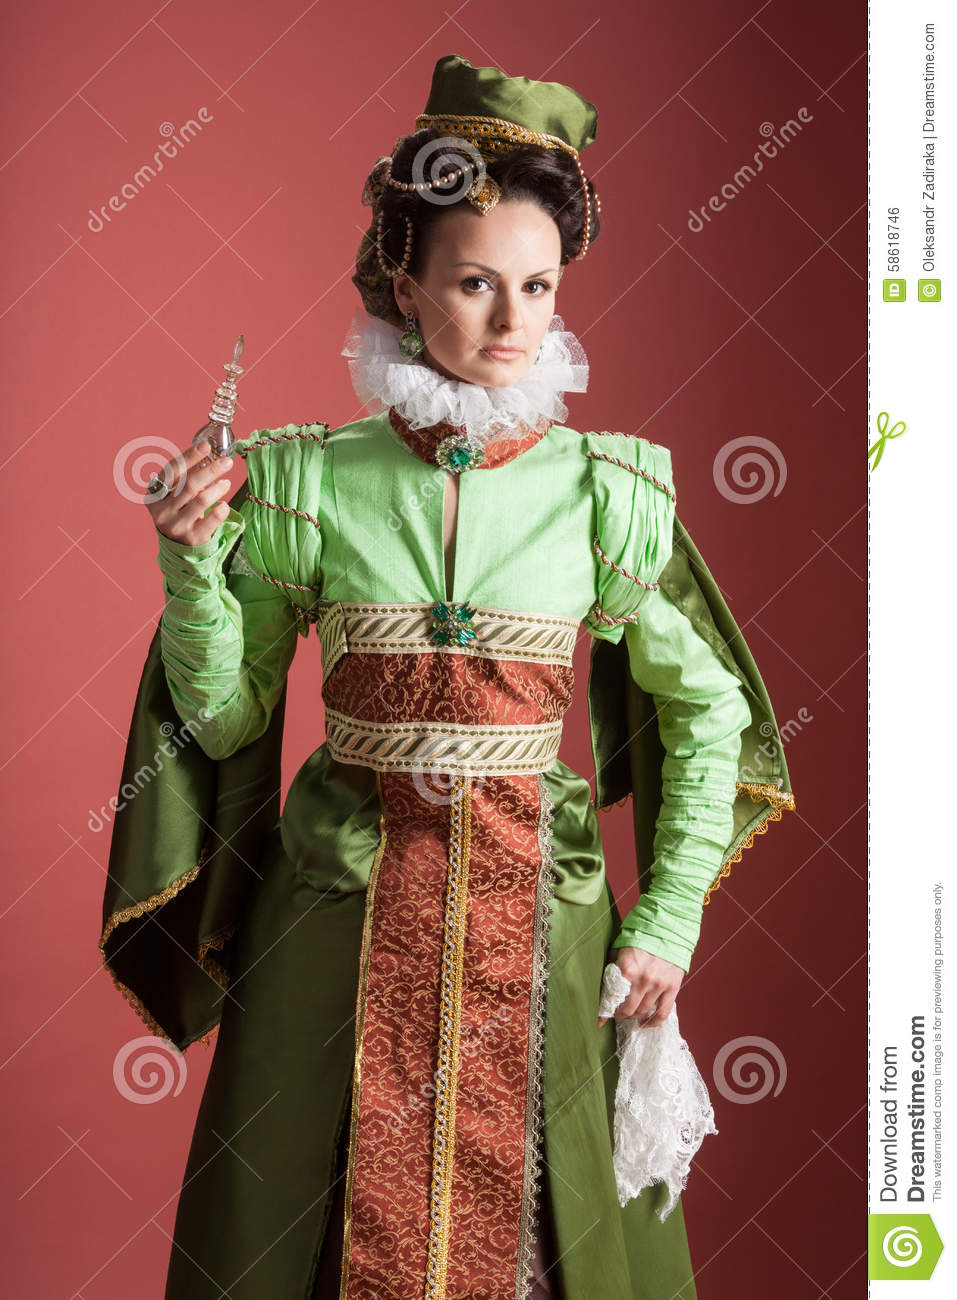 History of fashion design 16th century stock photo for History of fashion designers